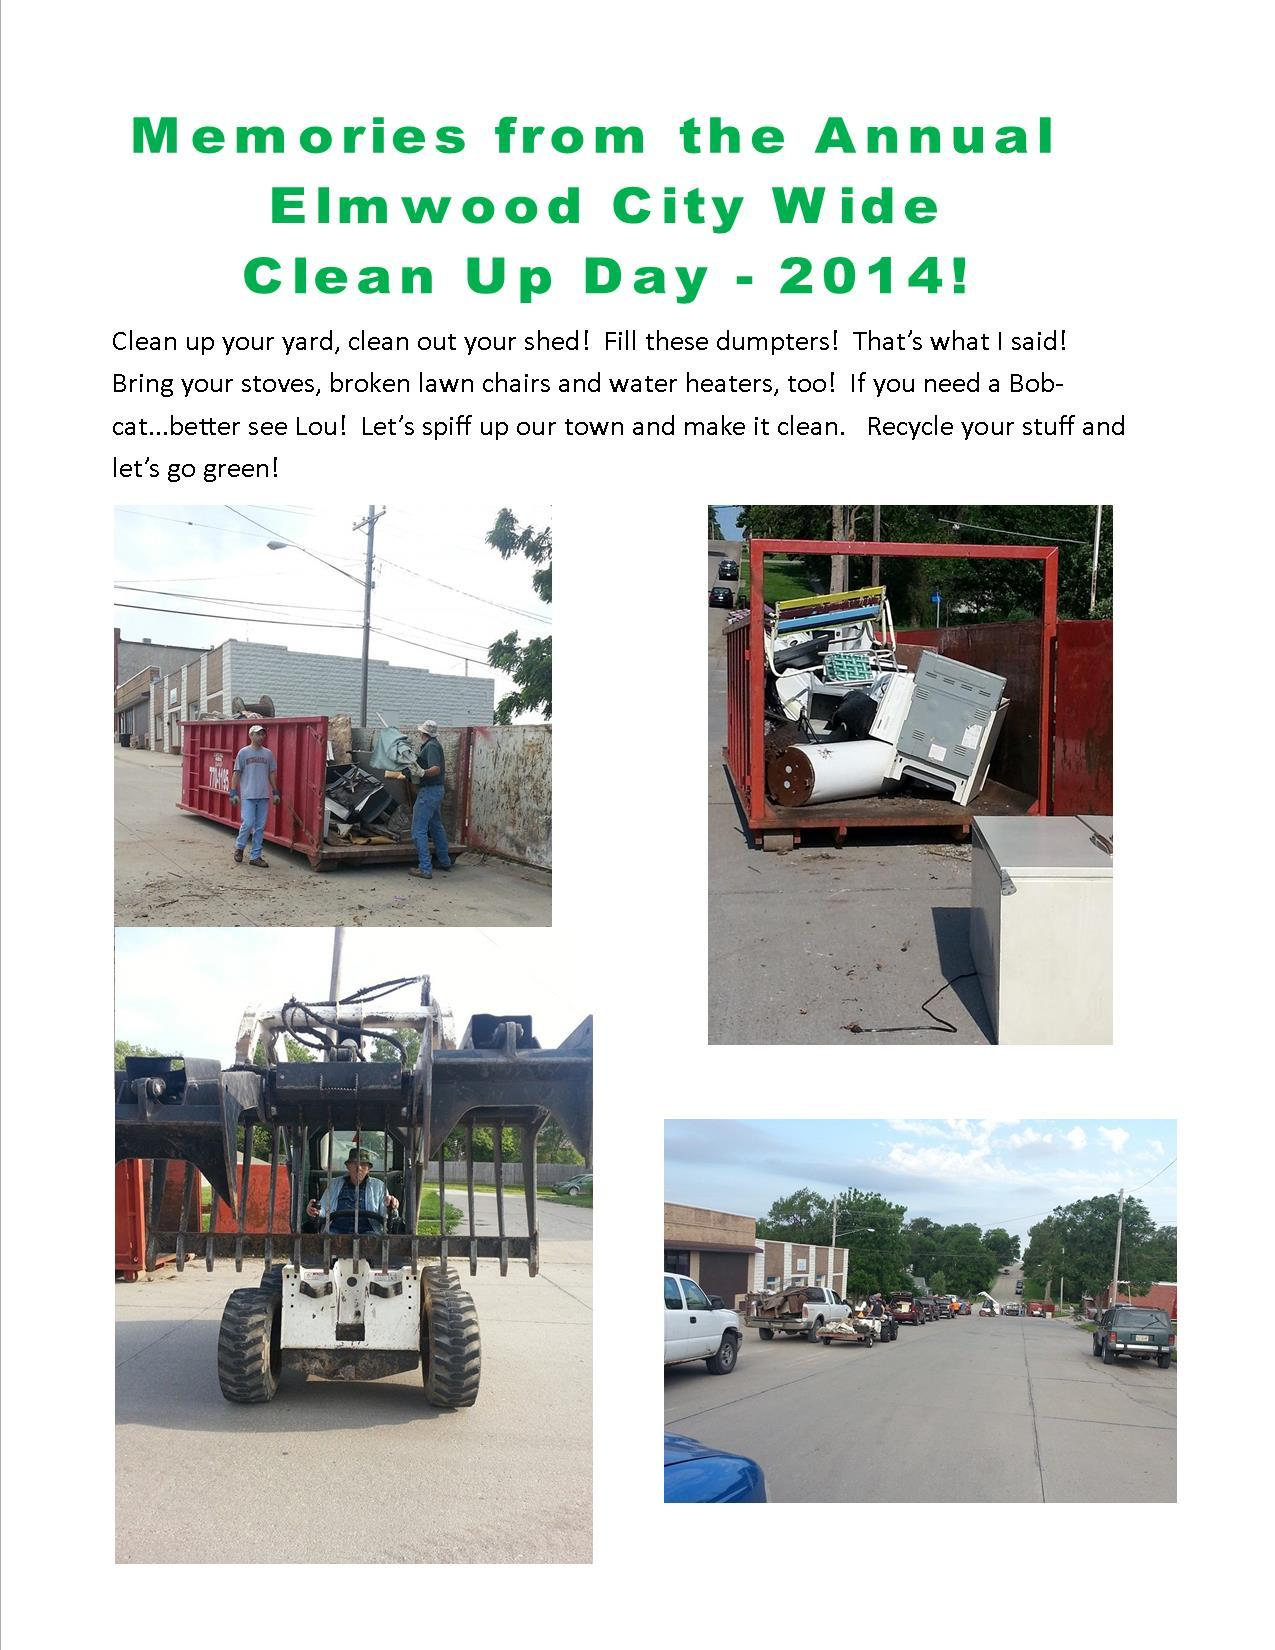 Elmwood City Wide Clean up 2014